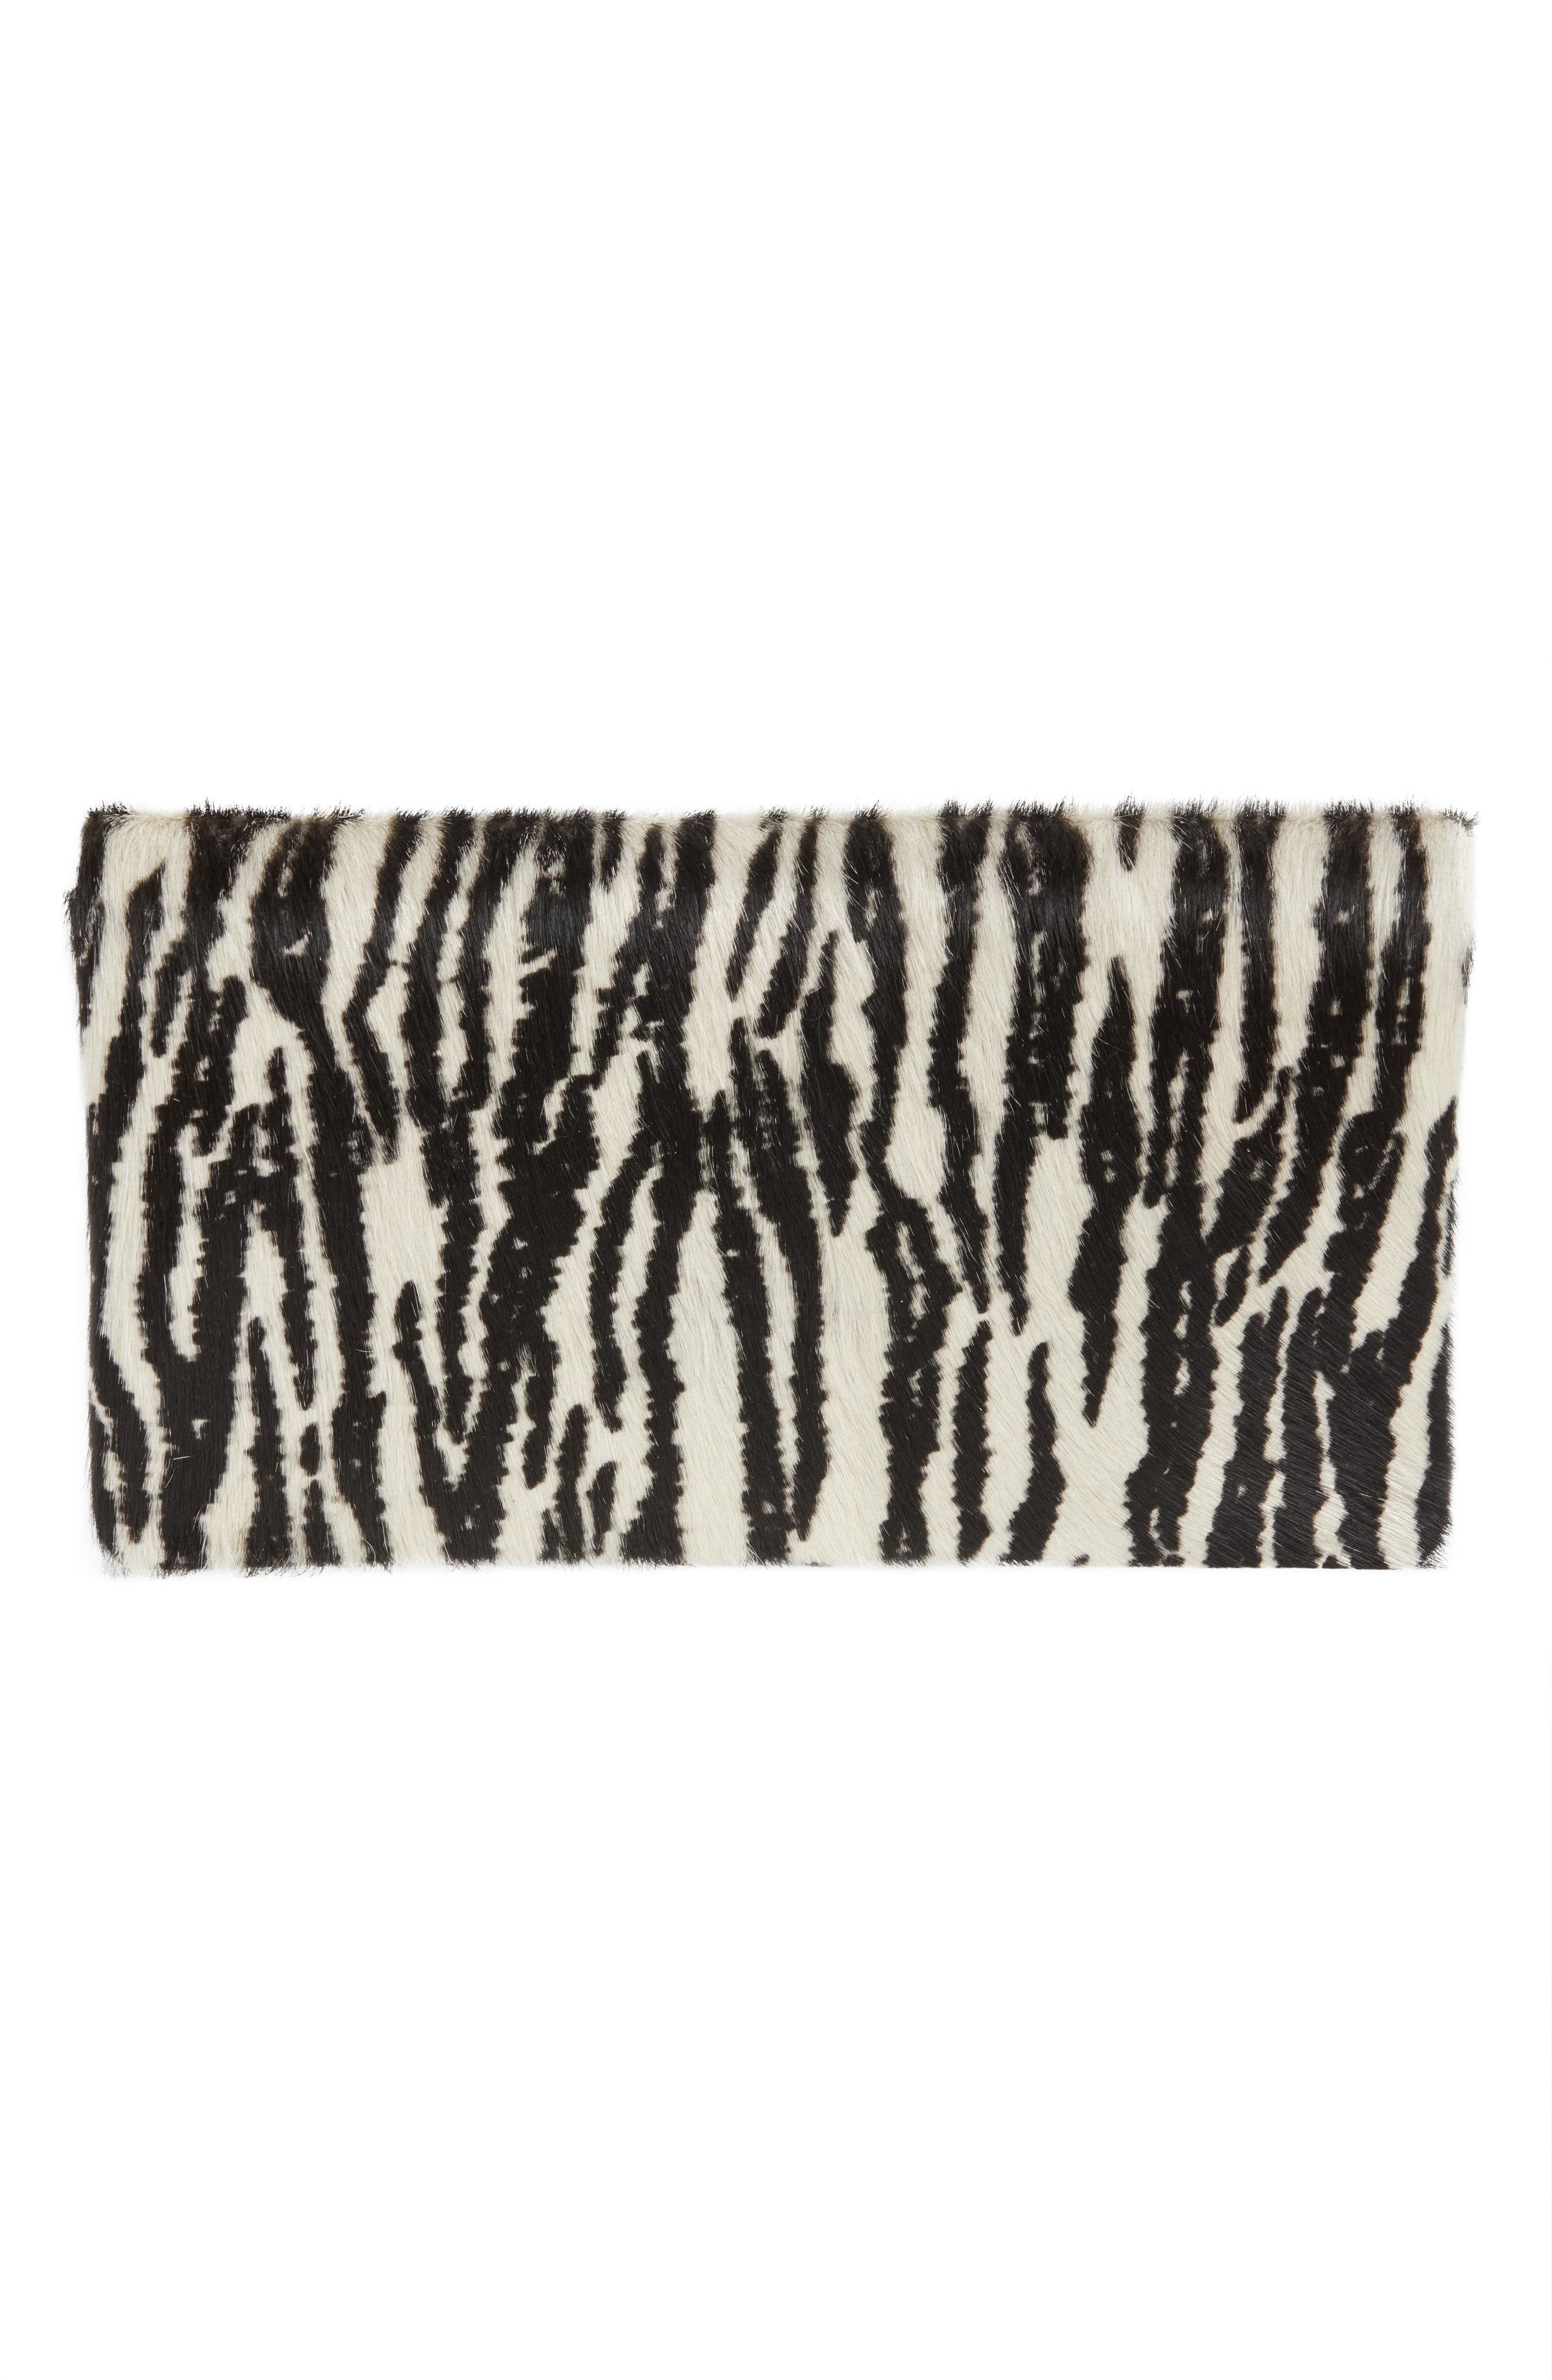 Zebra Print Genuine Calf Hair Foldover Clutch,                             Alternate thumbnail 3, color,                             Zebra Hair On